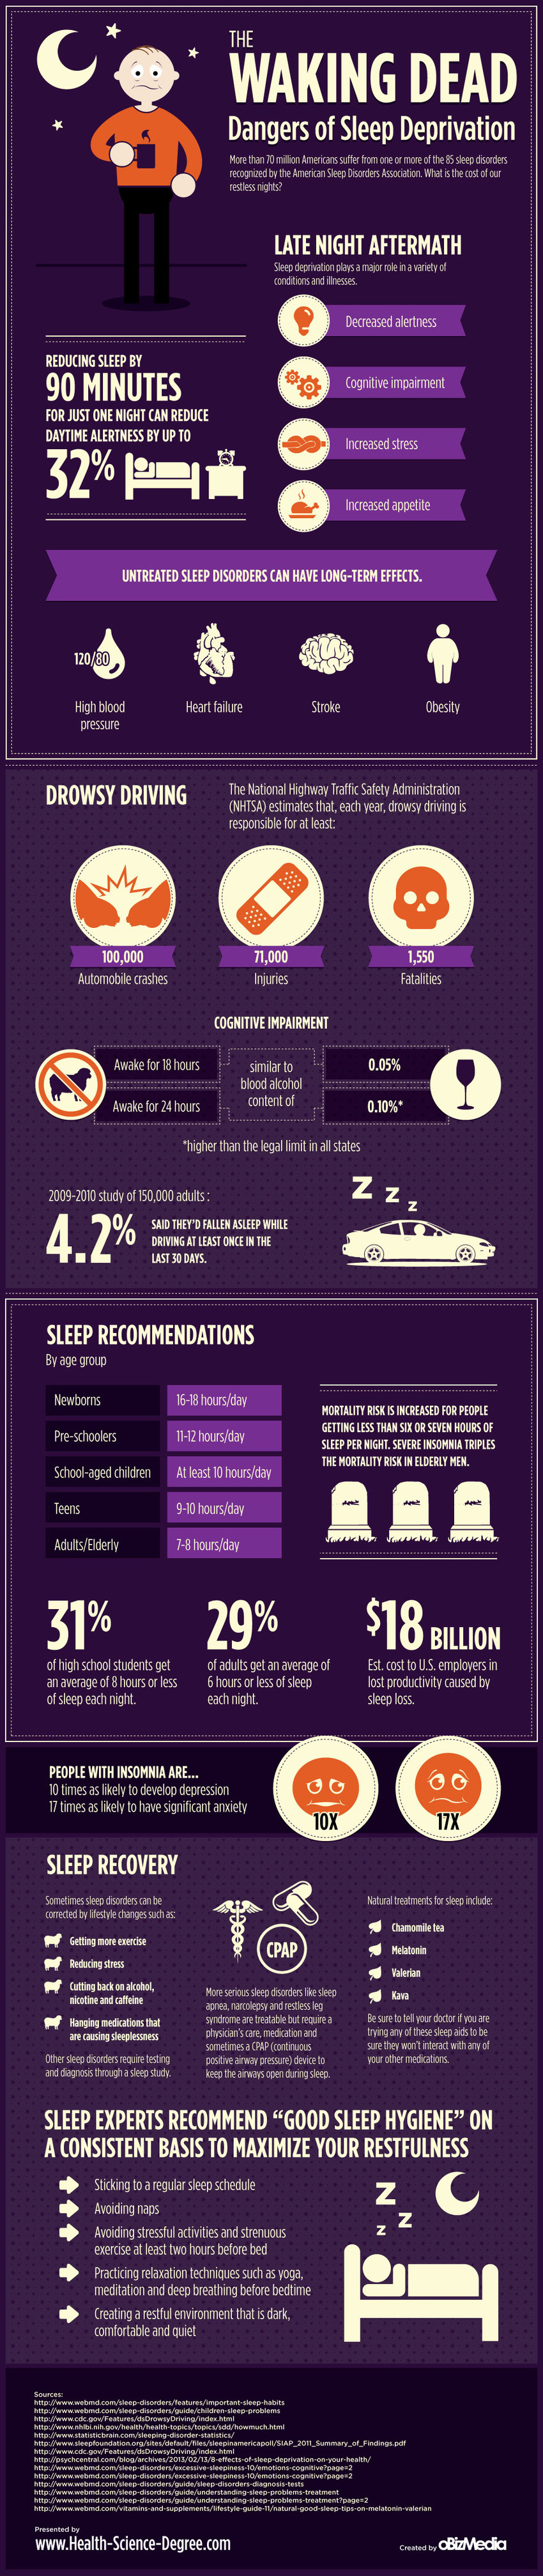 Why Sleep Deprivation Is Dangerous Infographic